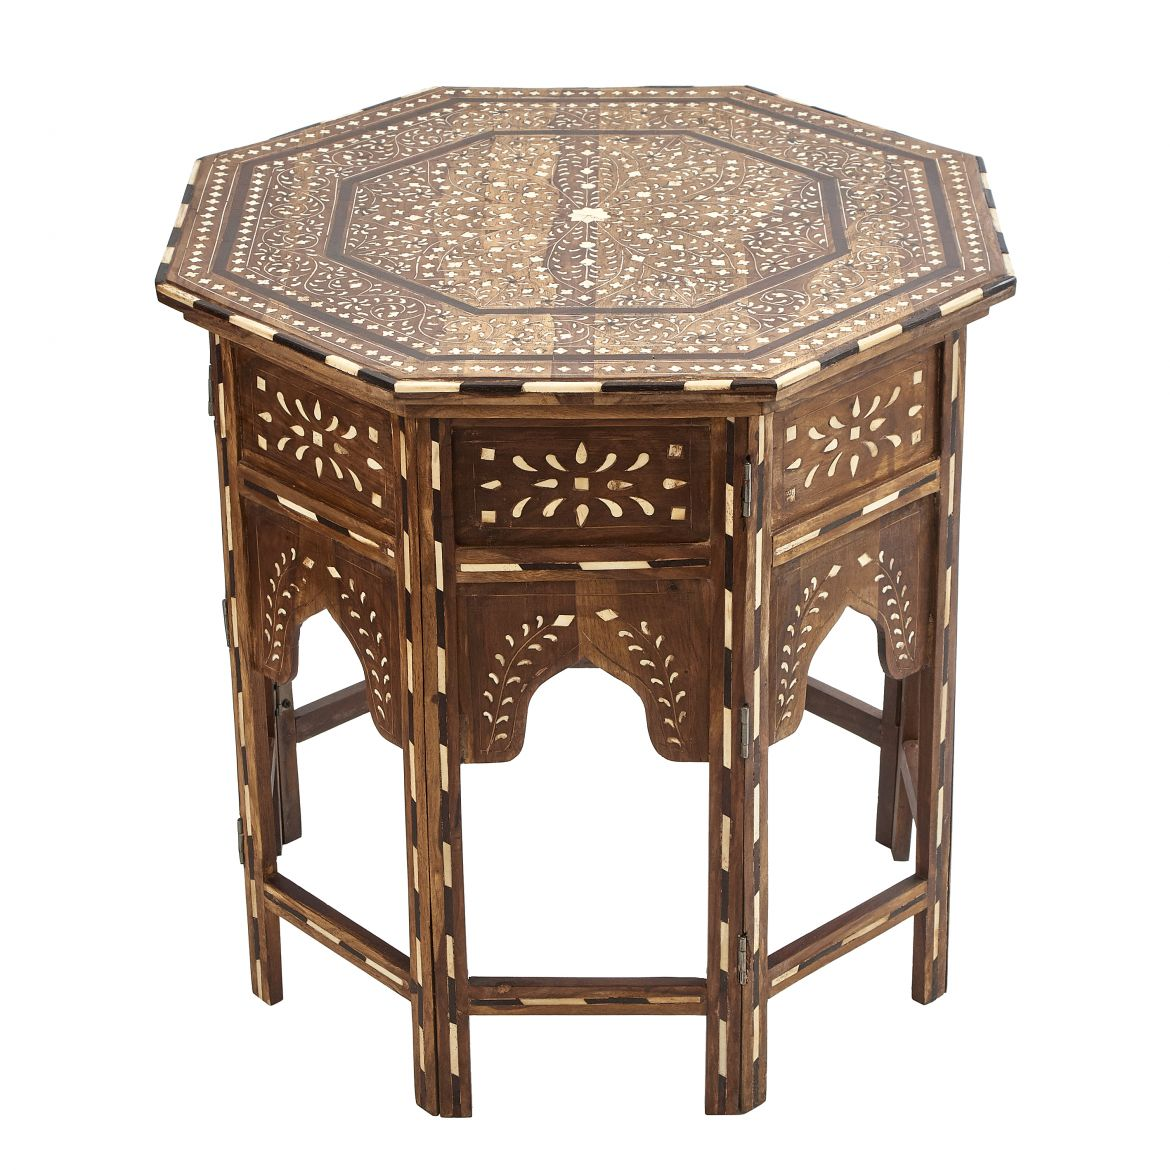 Contemporary Foliate Inlaid Table